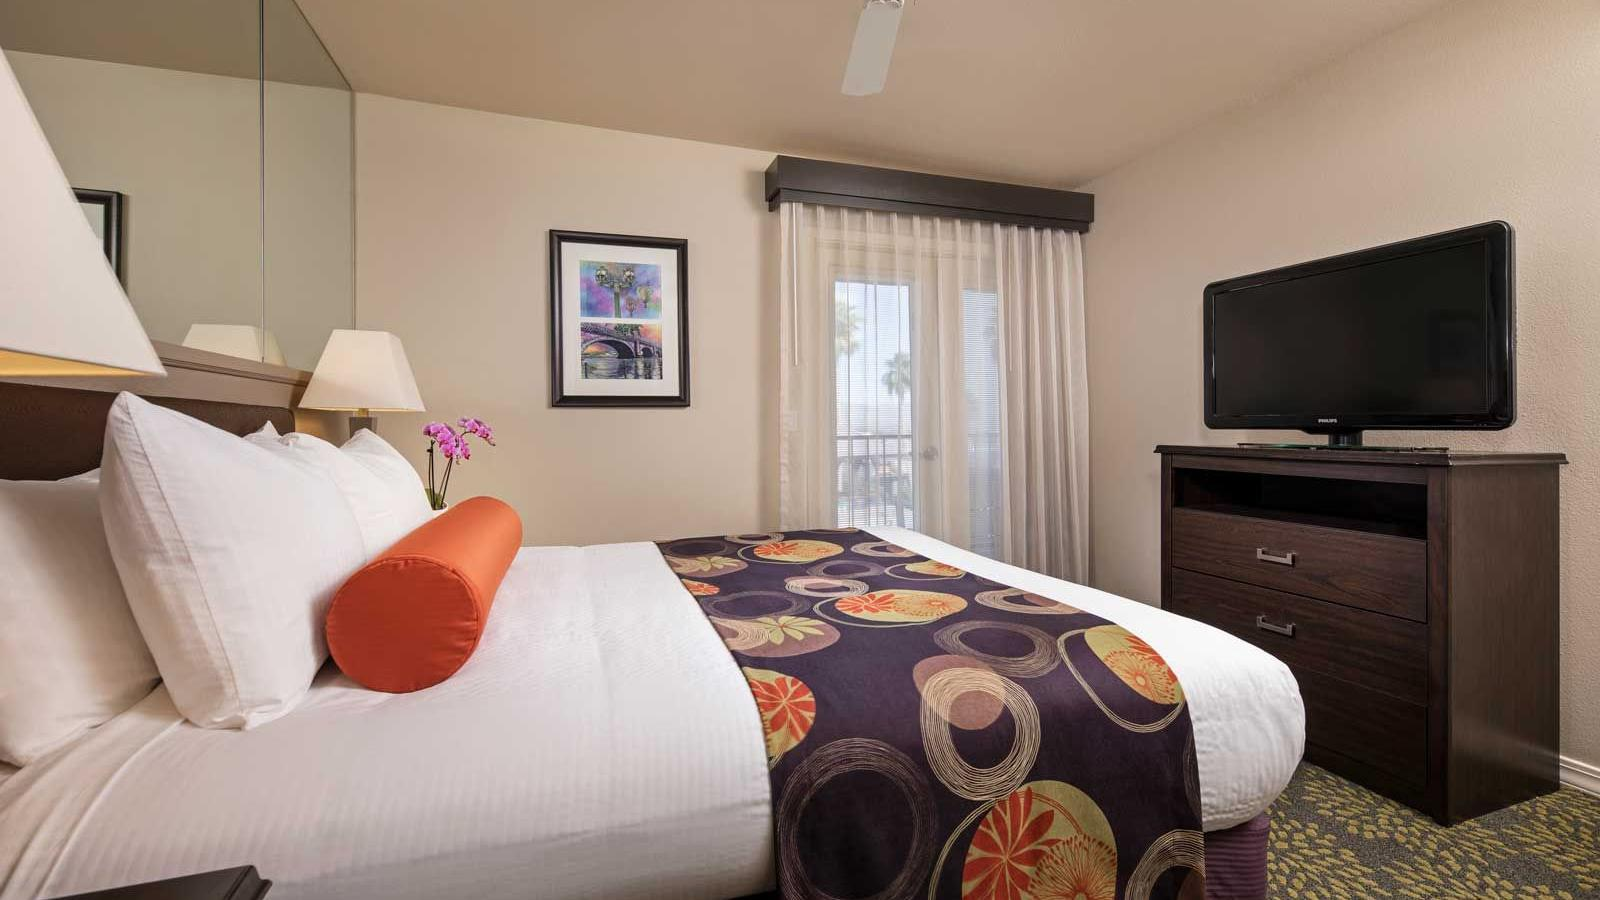 Resort suite with one bed.